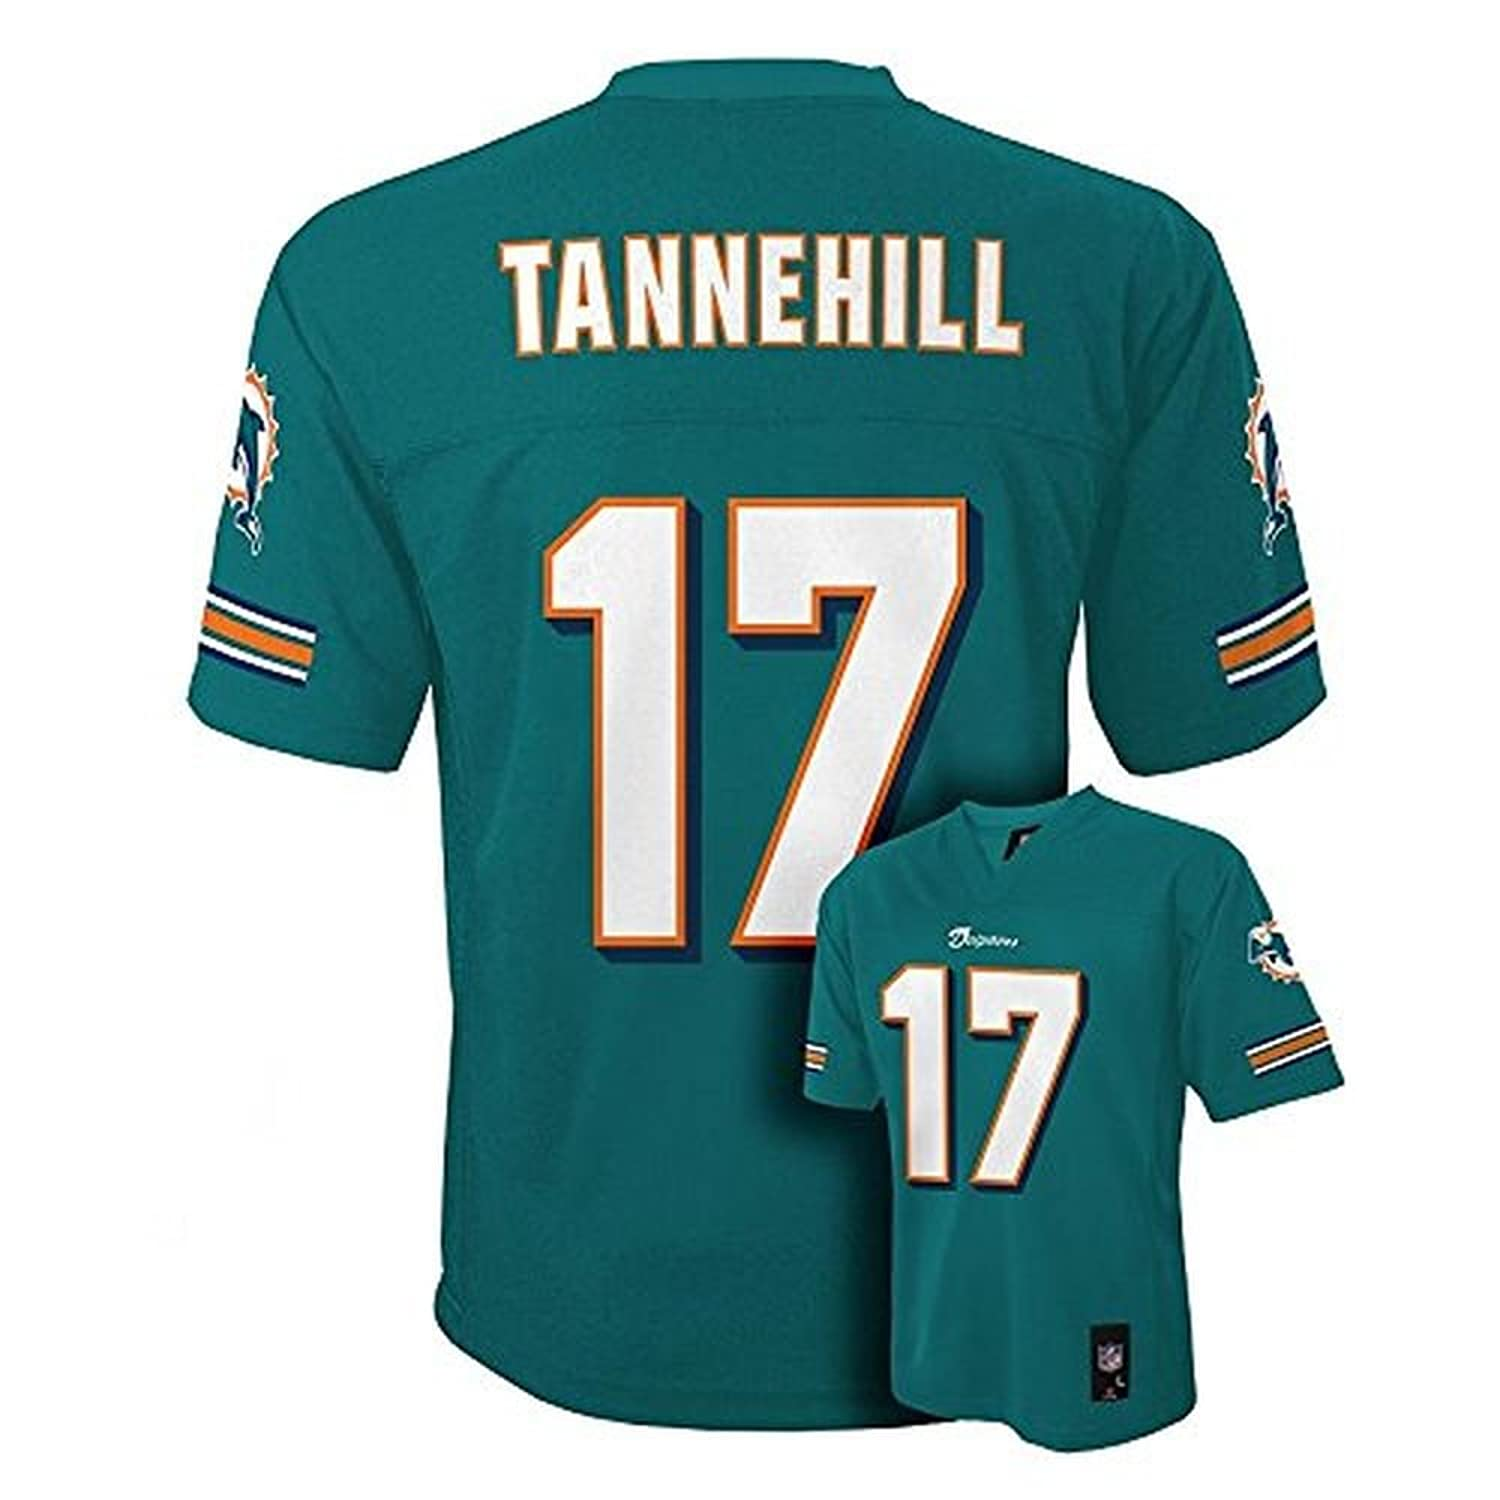 Amazon.com  Ryan Tannehill Miami Dolphins Aqua NFL Youth 2013-14 Season  Mid-tier Jersey (Medium 10 12)  Clothing 93d85899f89b